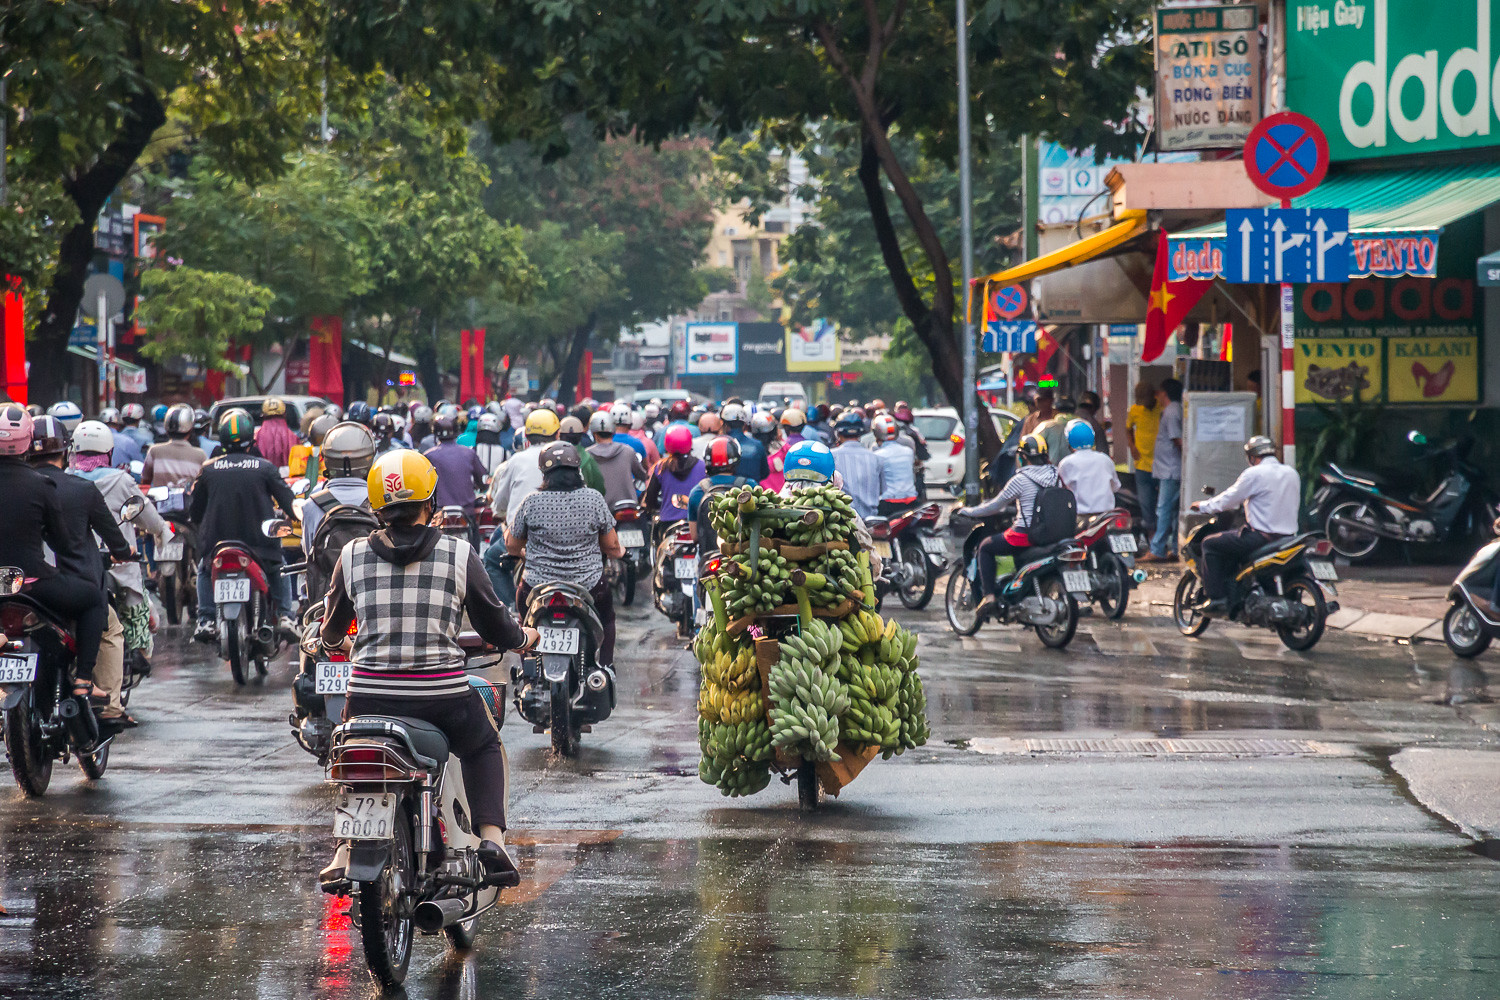 Image of traffic on a street in Vietnam